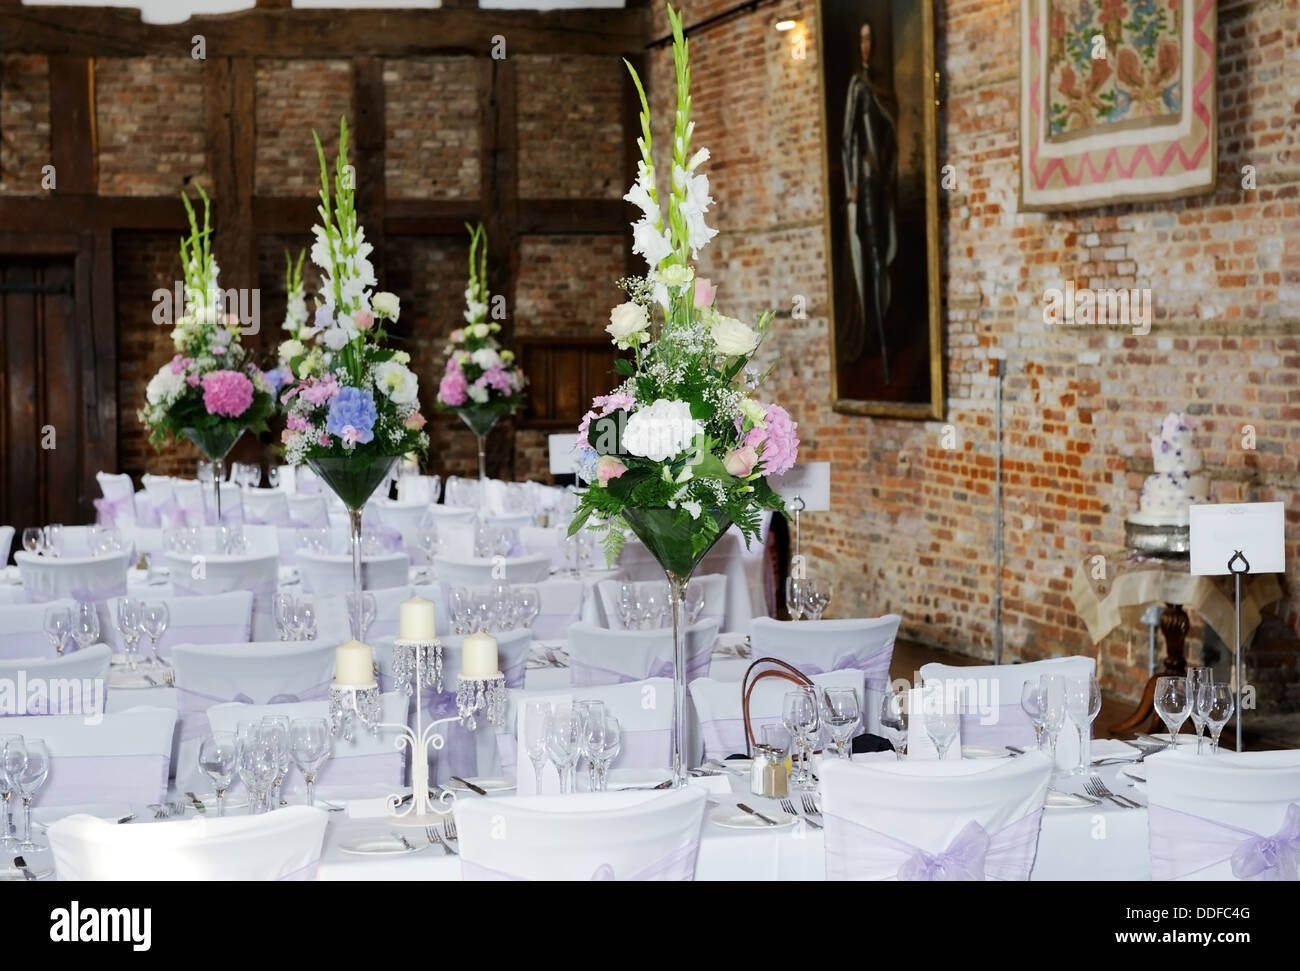 Wedding Reception Setting Showing Flower Arrangements On Table And